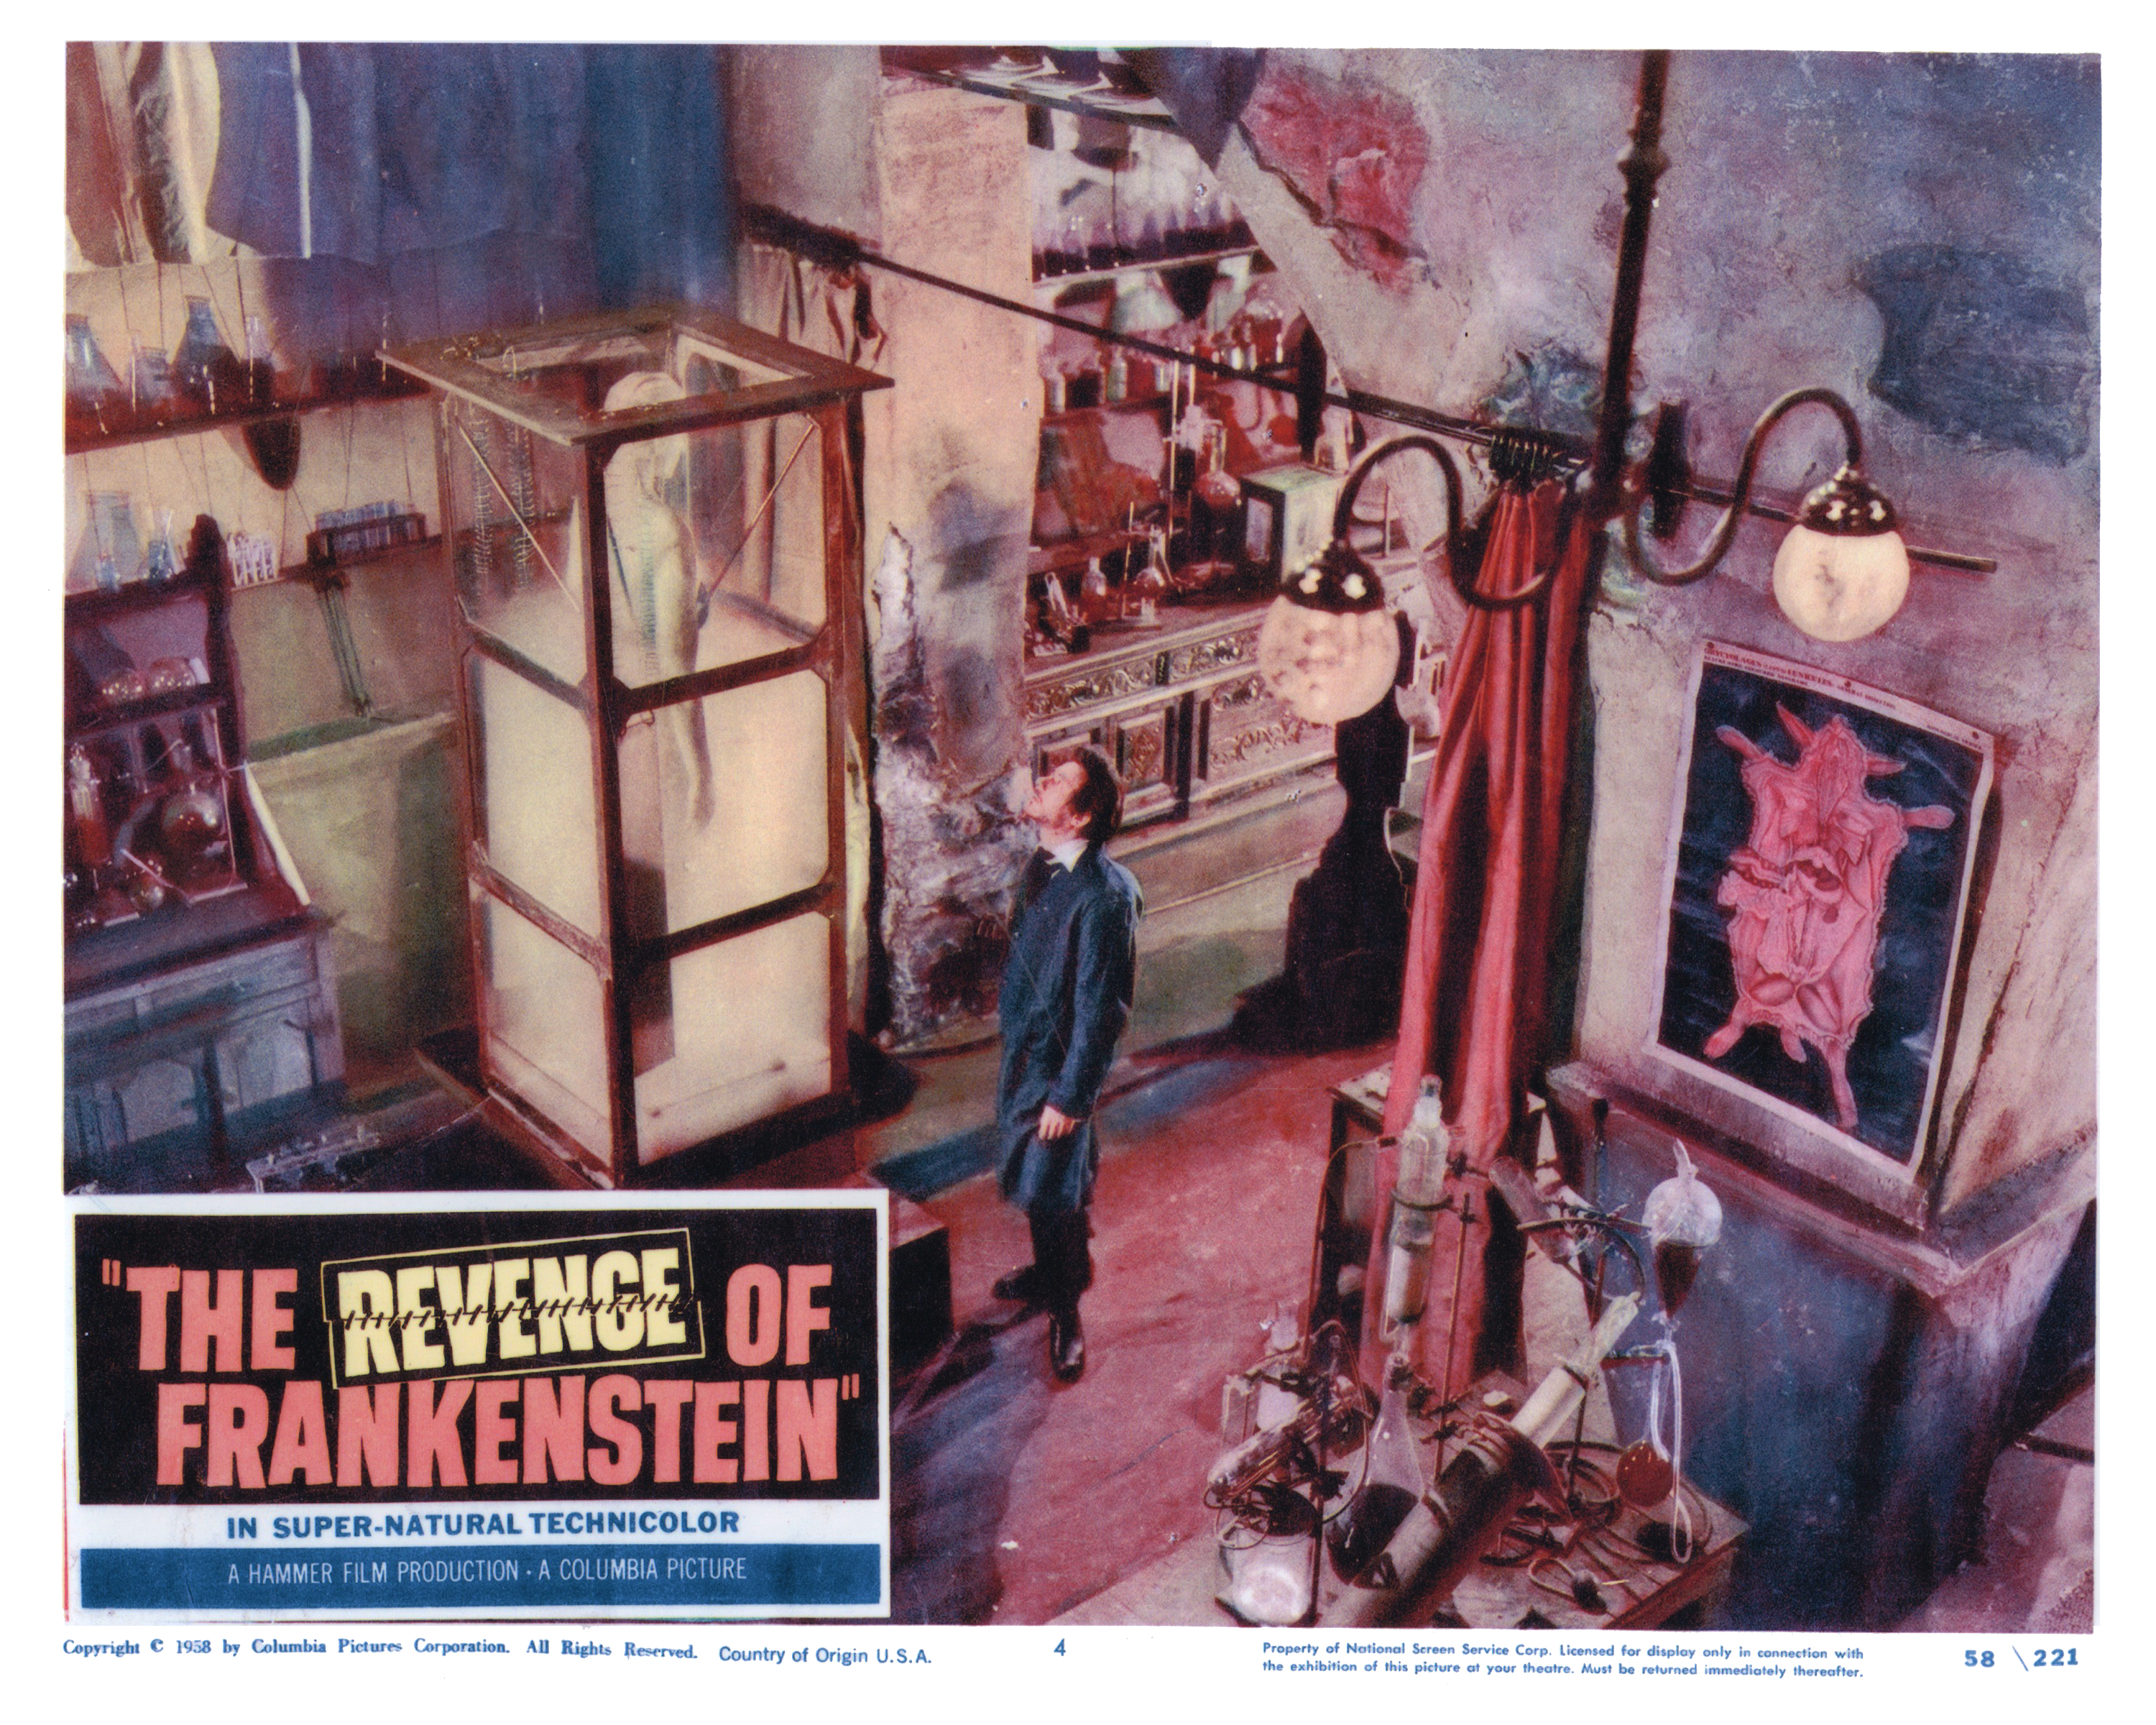 vengeance and revenge of frankenstein The revenge of frankenstein  his pupil seeks knowledge, but frankenstein desires vengeance against all those who have tried to stop his terrifying work.